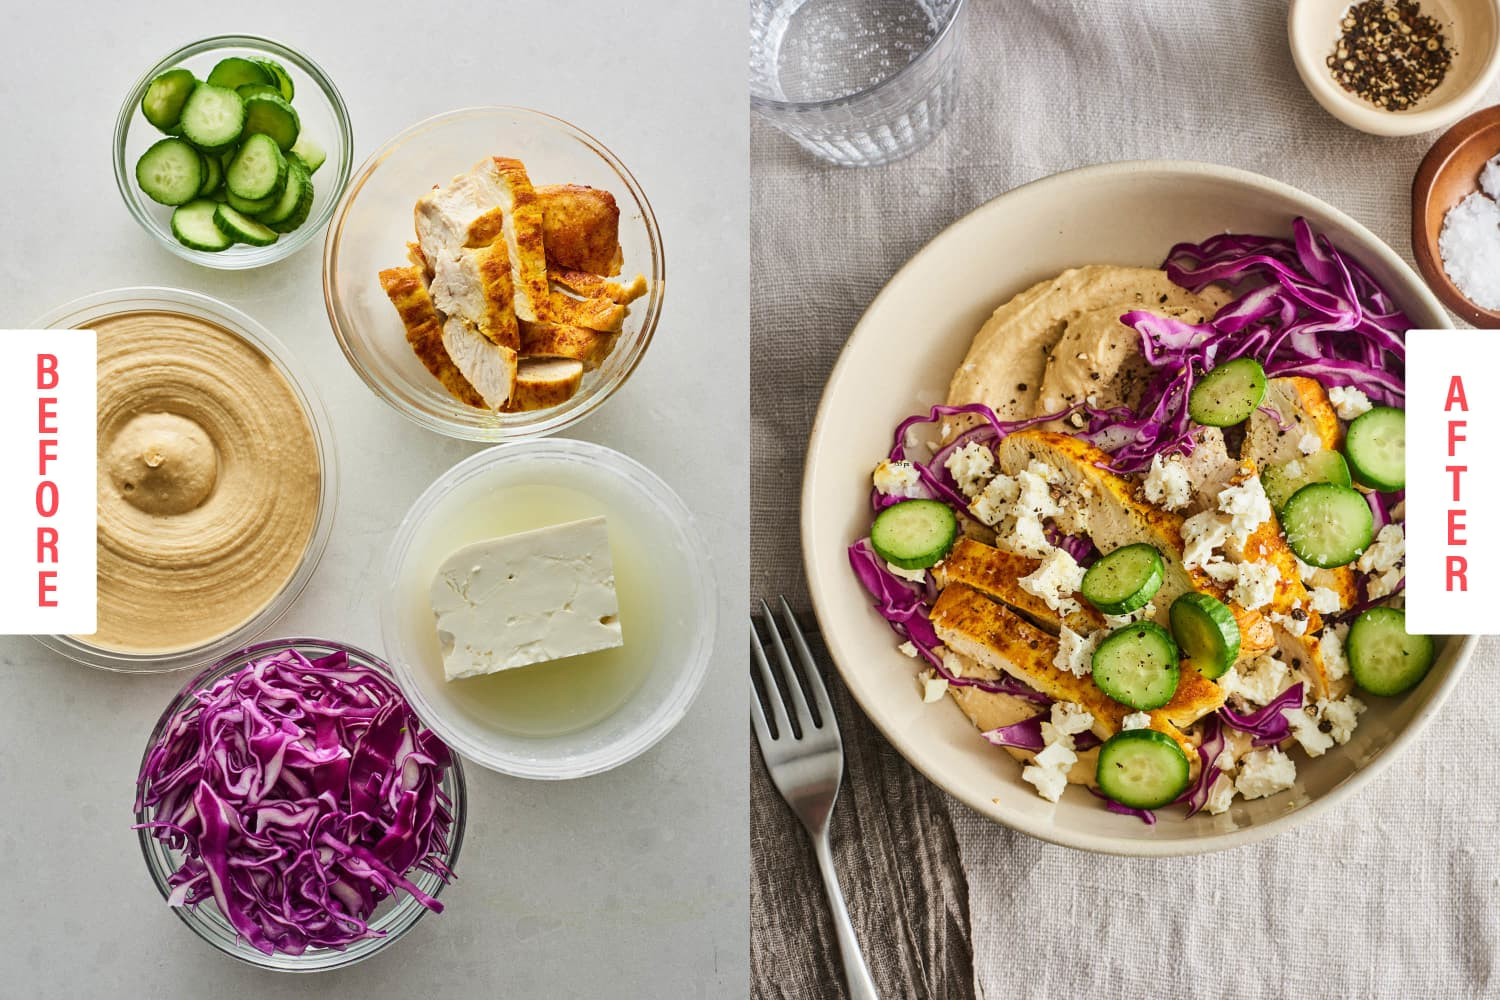 Eat Dip for Dinner with These 5-Ingredient Hummus Bowls